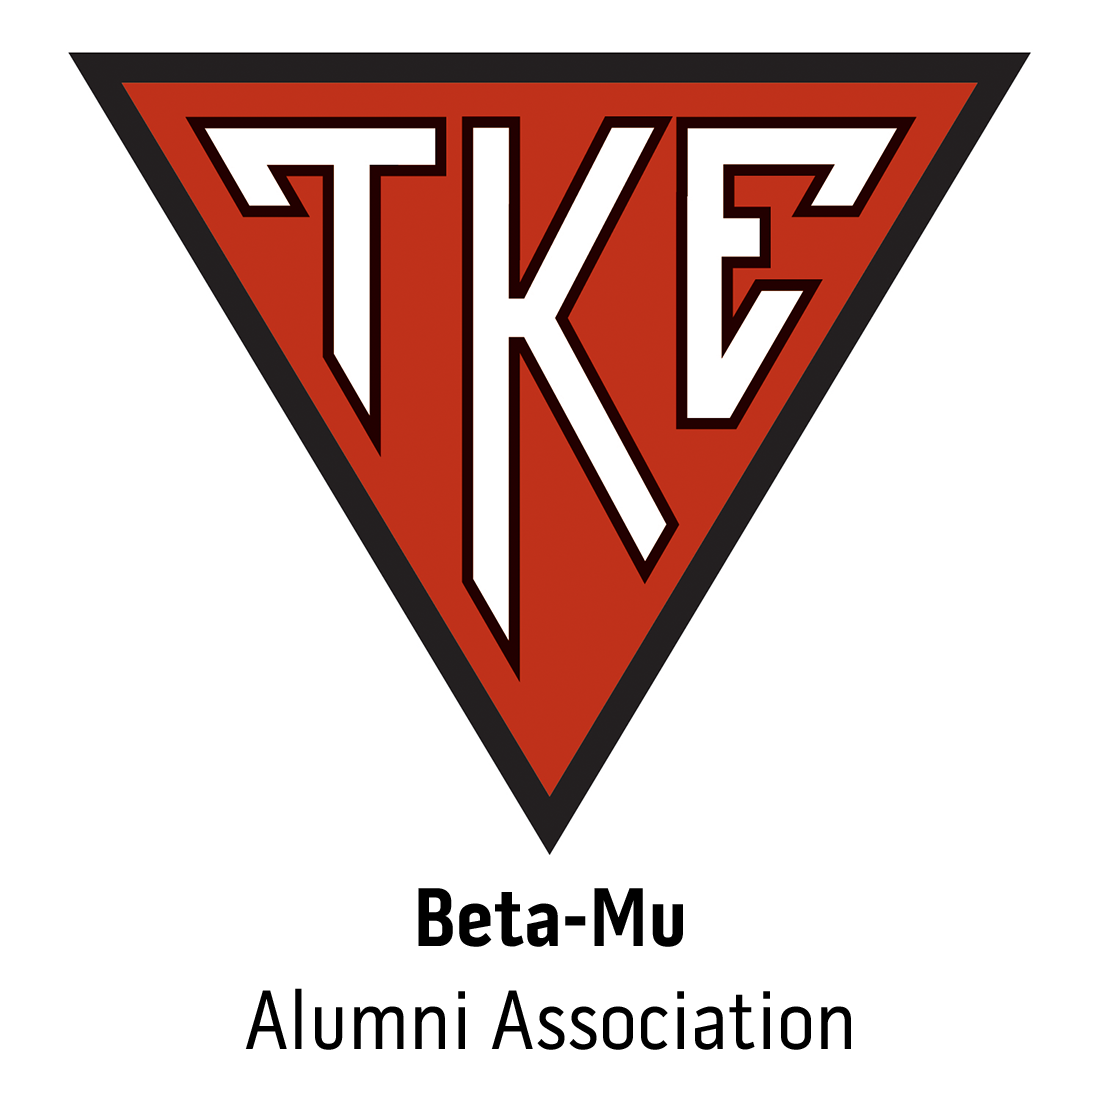 Beta-Mu Alumni Association at Bucknell University